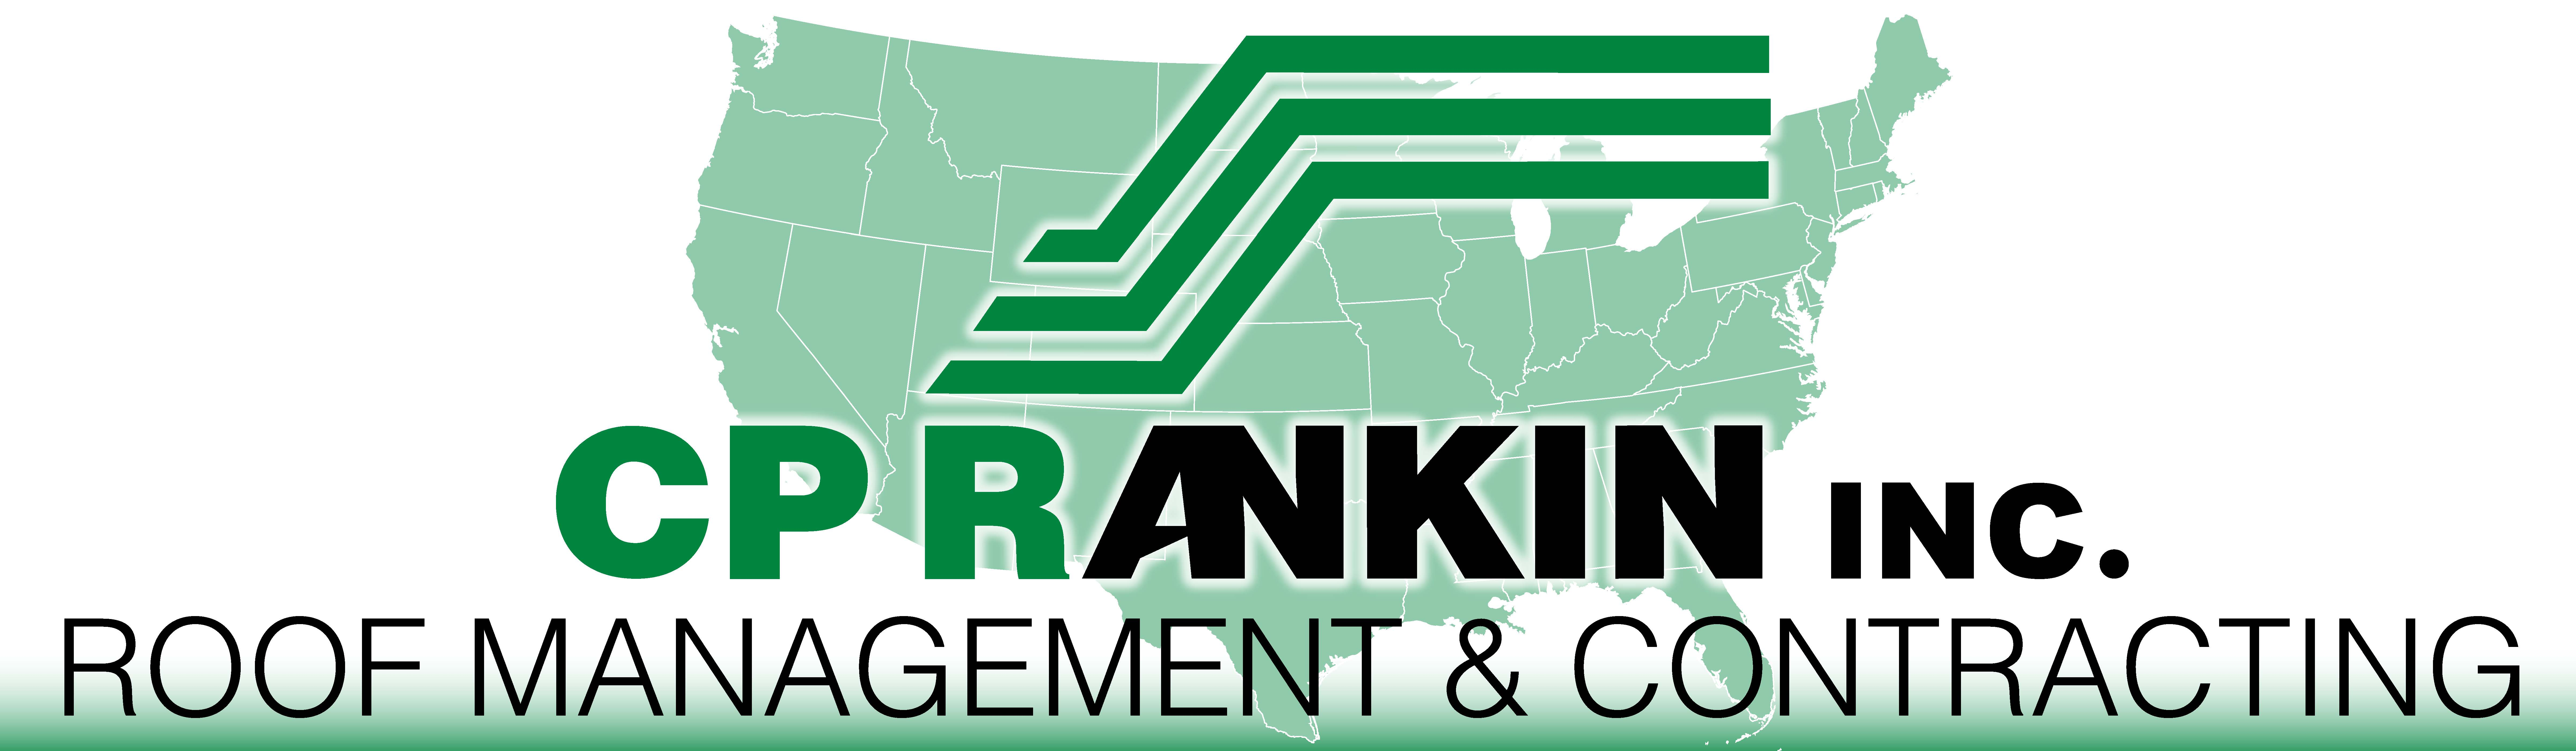 CP Rankin Roof Management